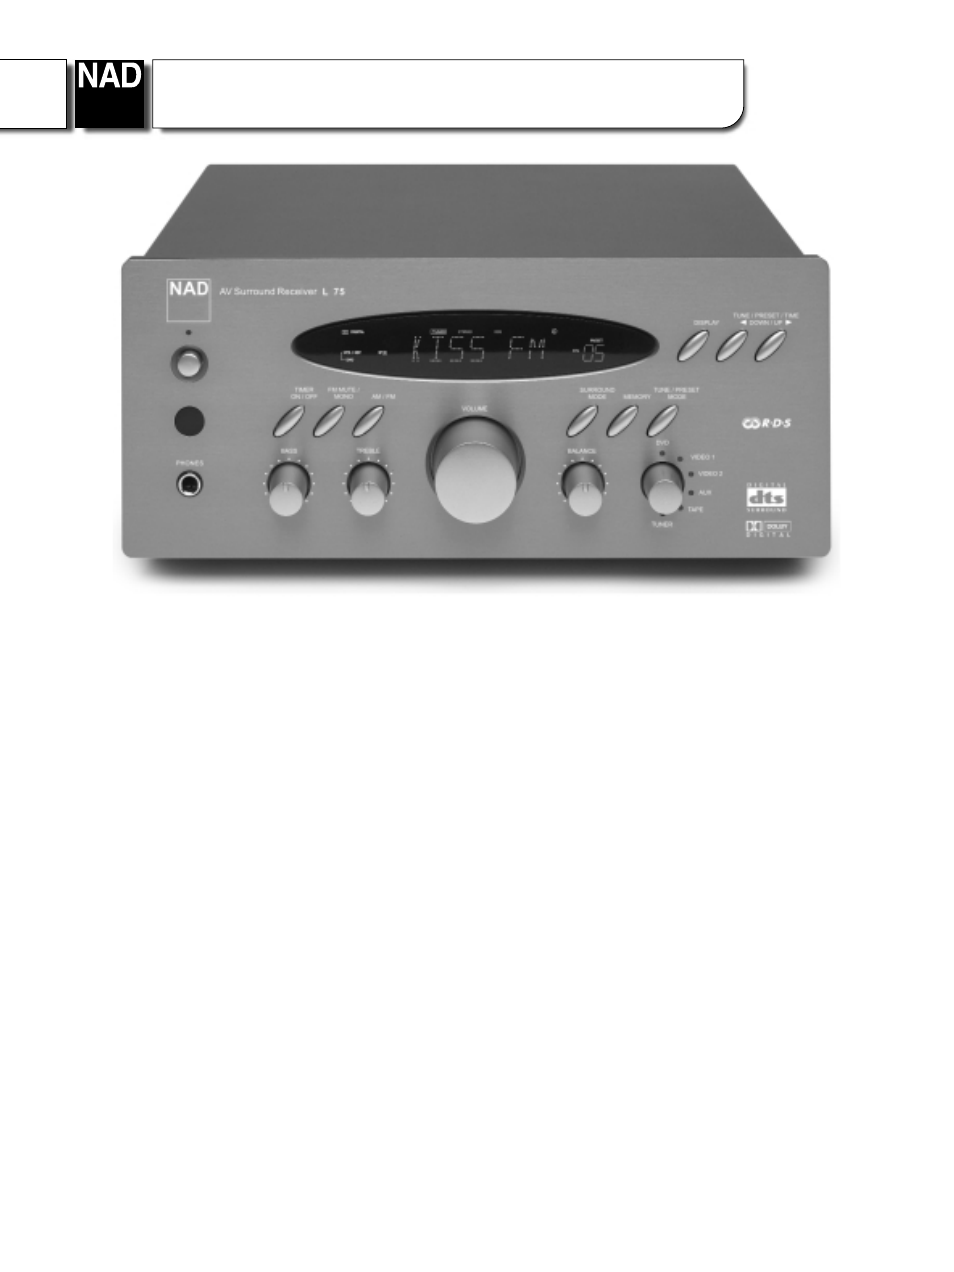 NAD L75 User Manual | 2 pages